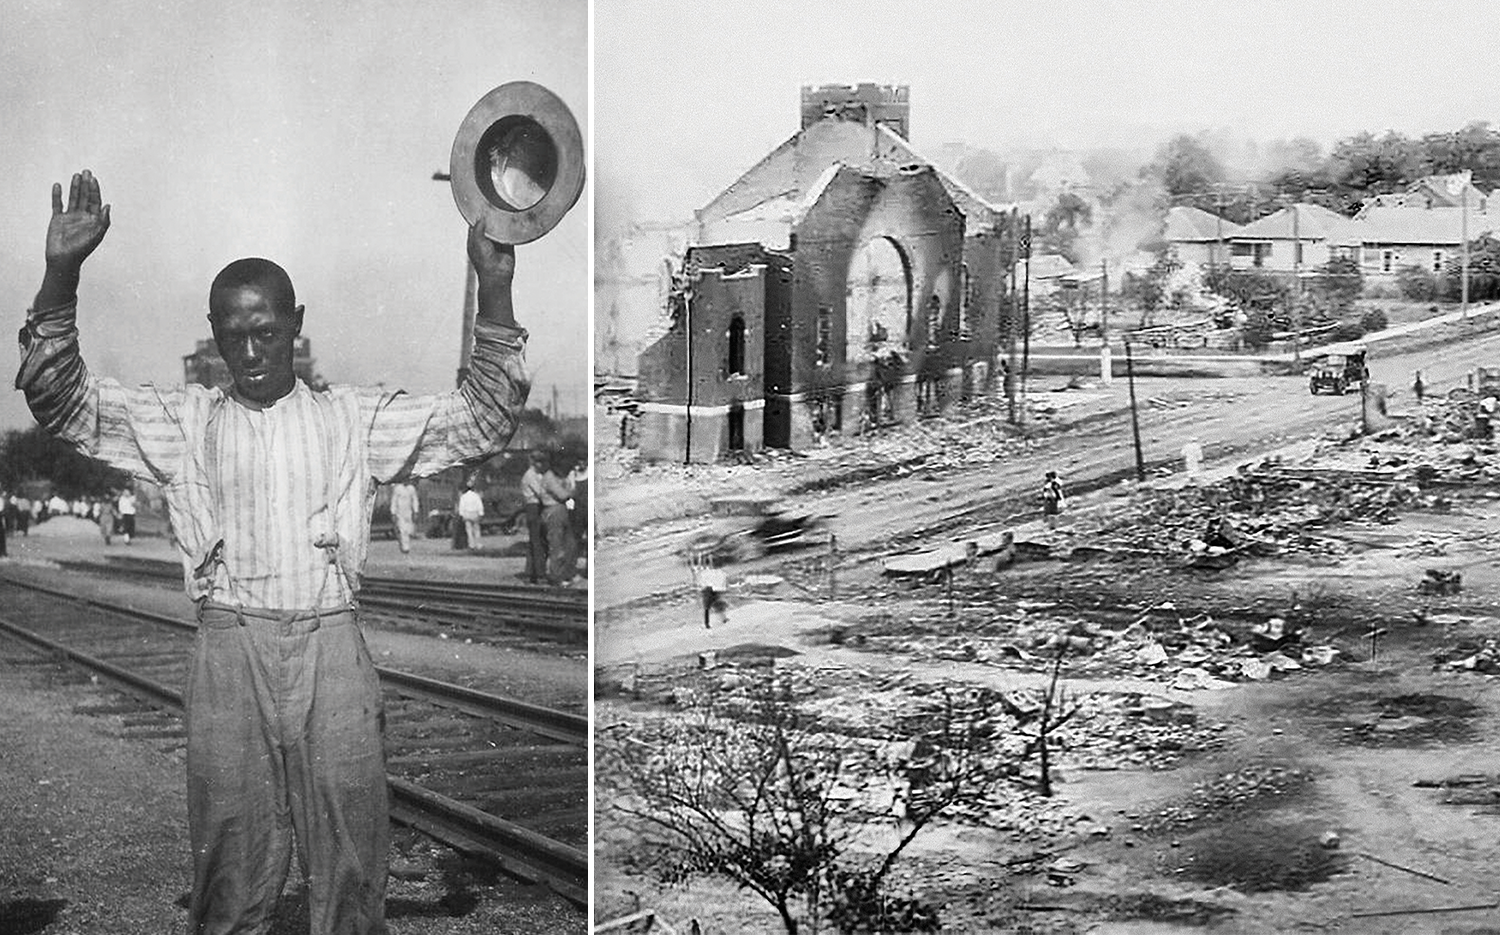 LEFT: A man surrenders during the riots. RIGHT: Part of the Greenwood district that was burned.